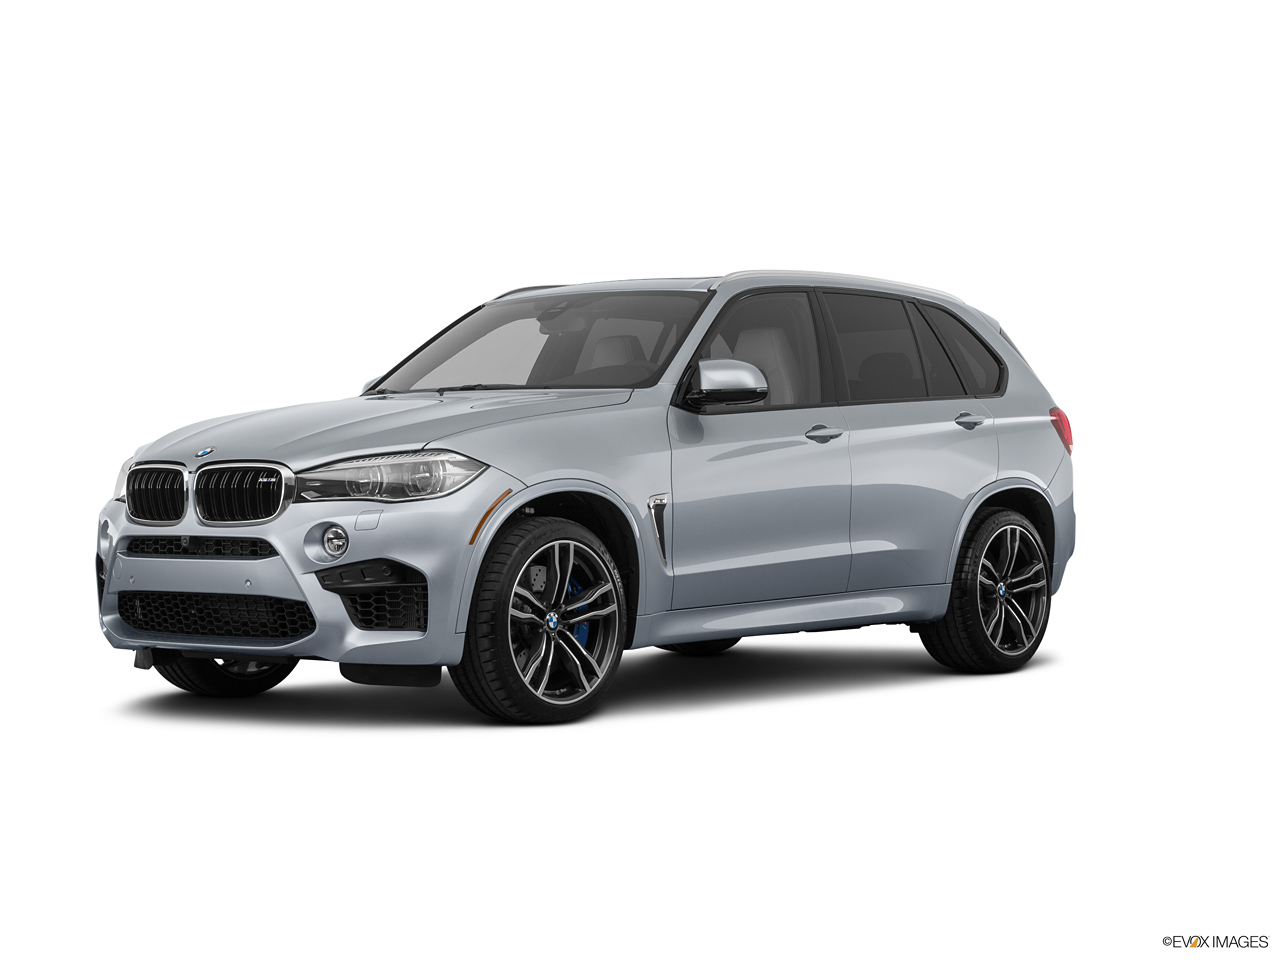 car pictures list for bmw x5 m 2018 4 4t xdrive qatar. Black Bedroom Furniture Sets. Home Design Ideas